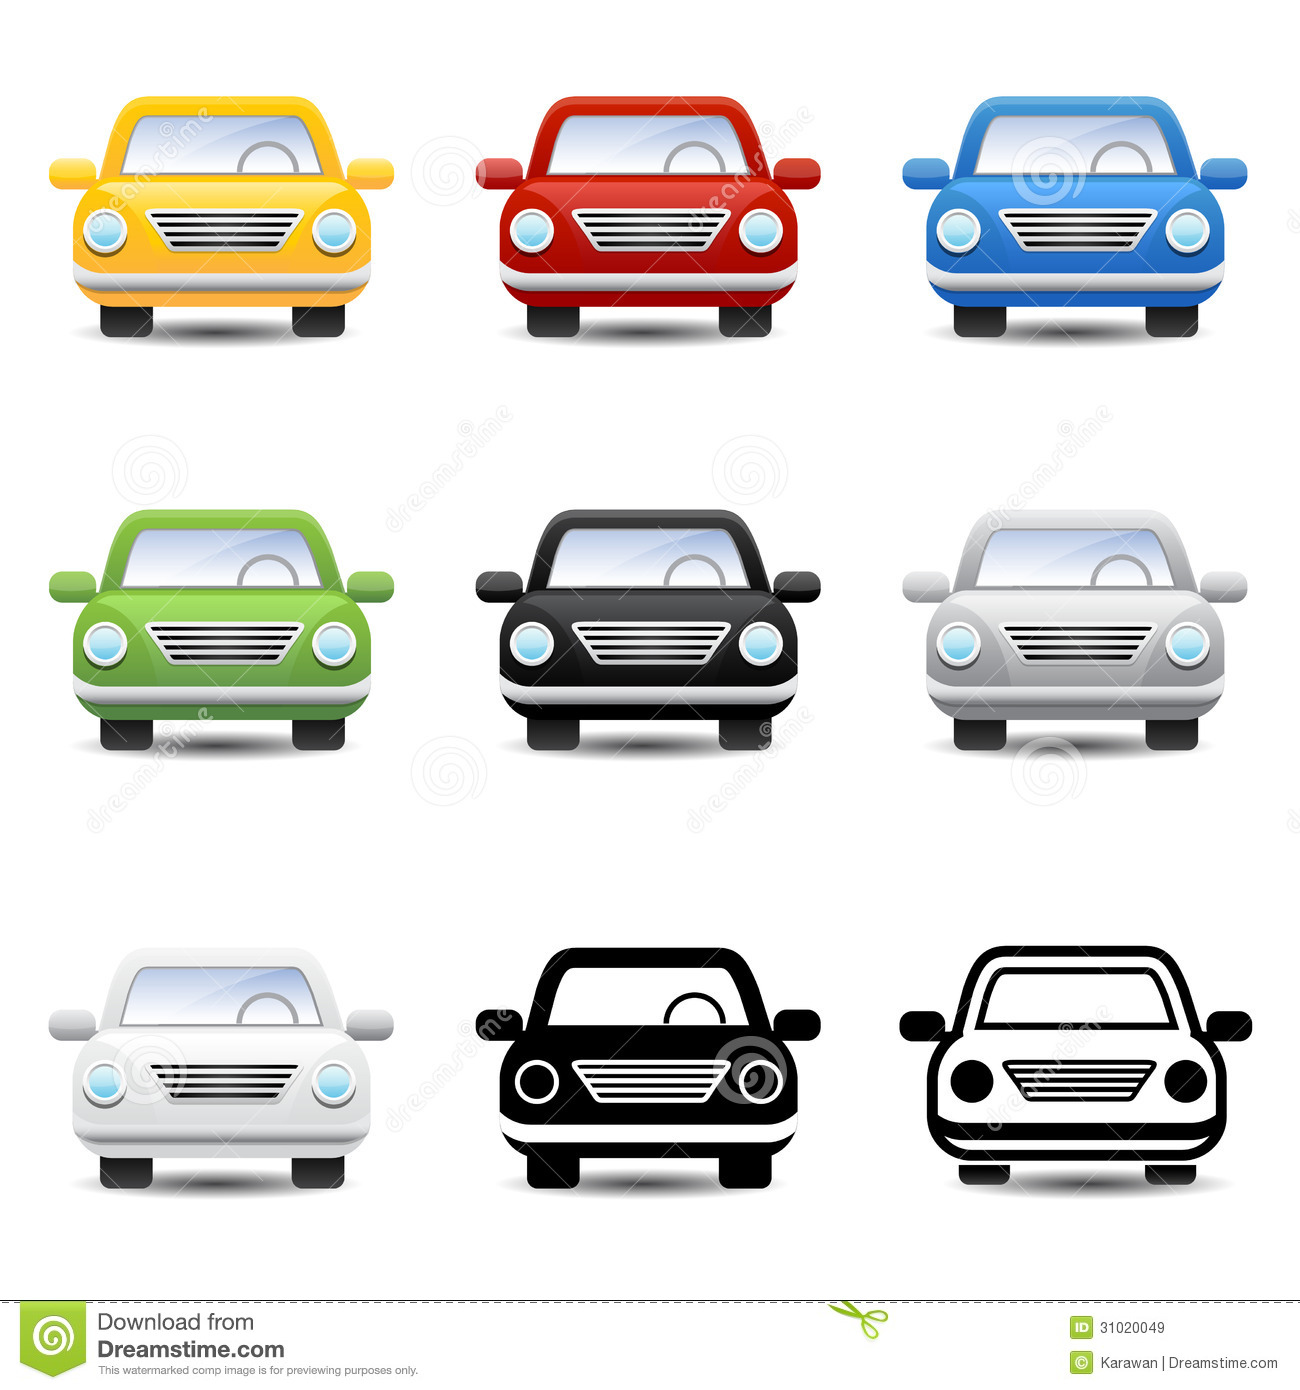 Car Icons Royalty Free Stock Images - Image: 31020049: dreamstime.com/royalty-free-stock-images-car-icons-vector-sport...